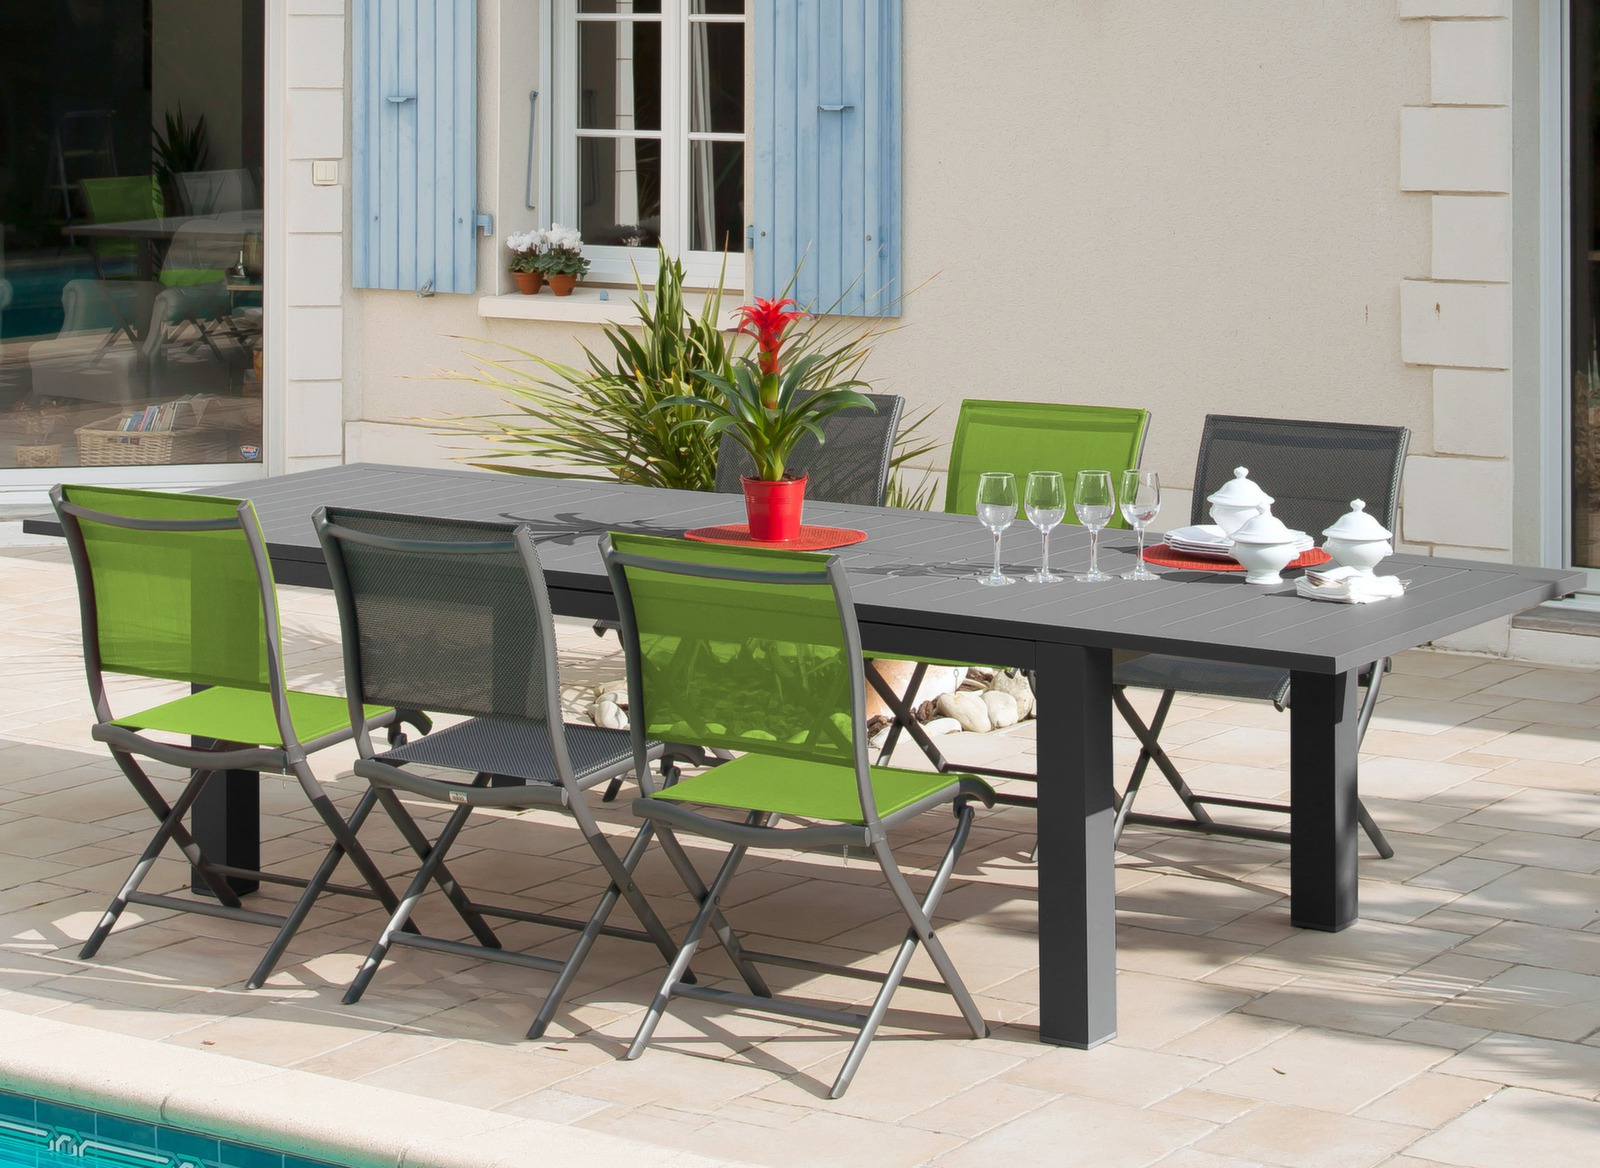 Table Aurore 214 311cm - Table avec extension - Mobilier de jardin 97d851742c56